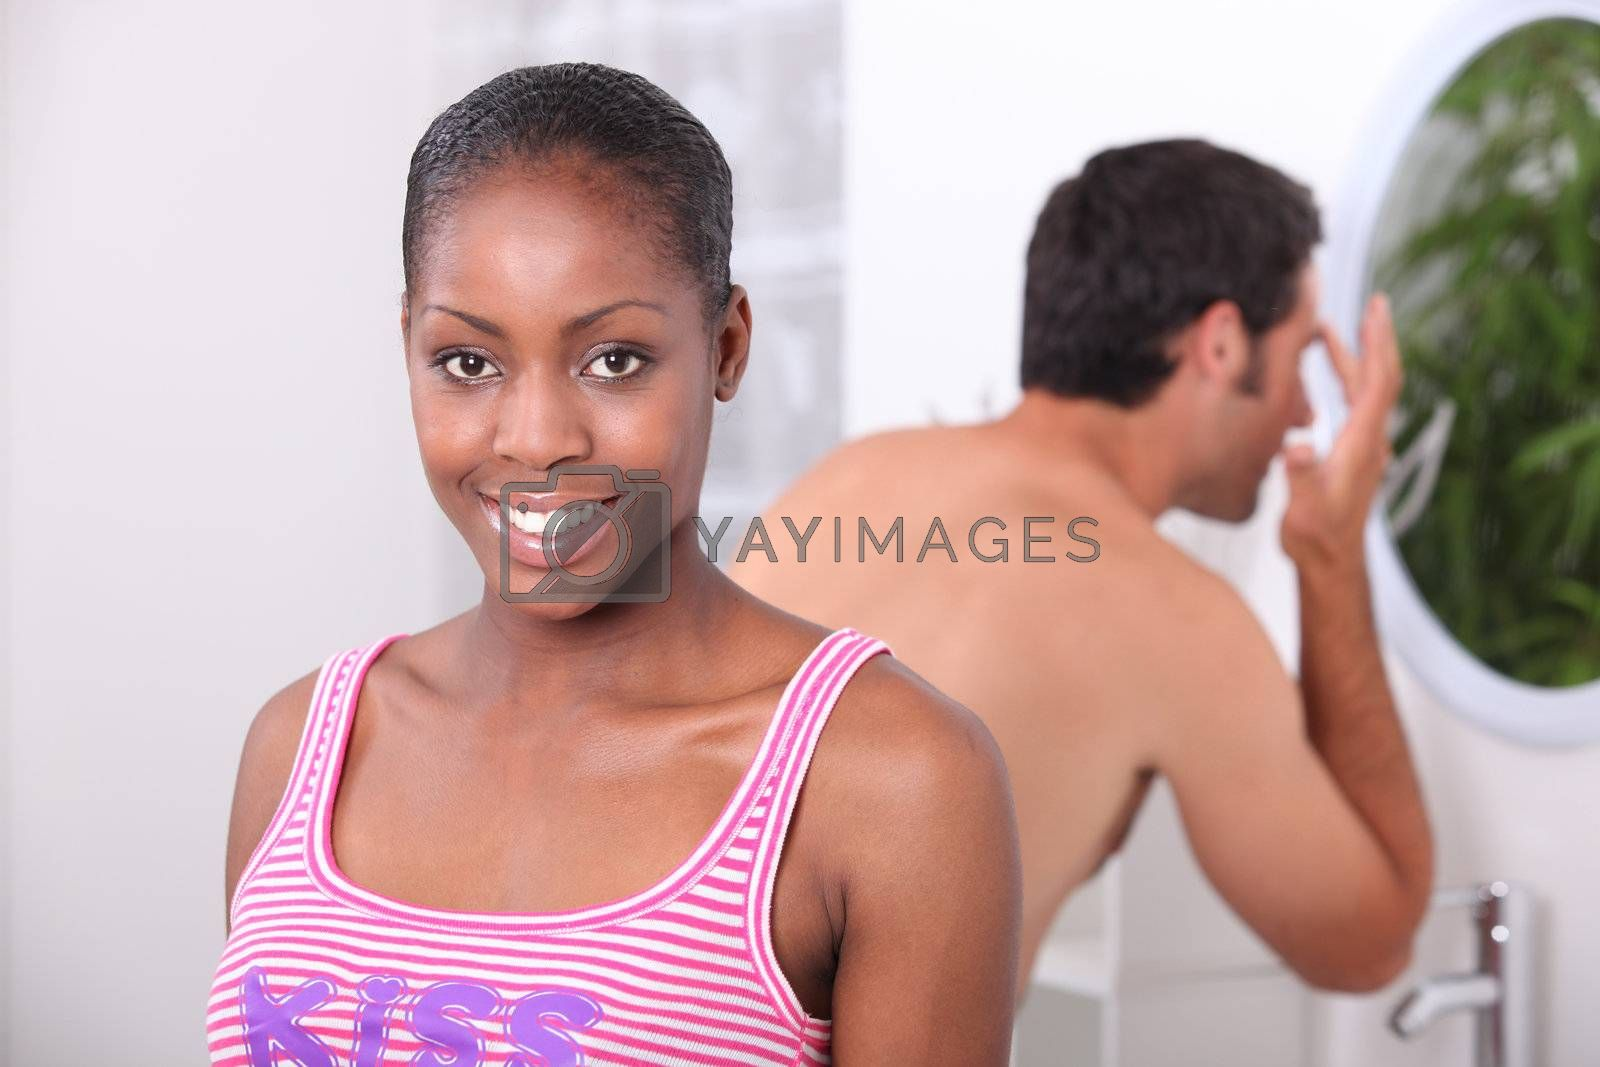 black woman and his boyfriend in the bathroom, the man has a wash